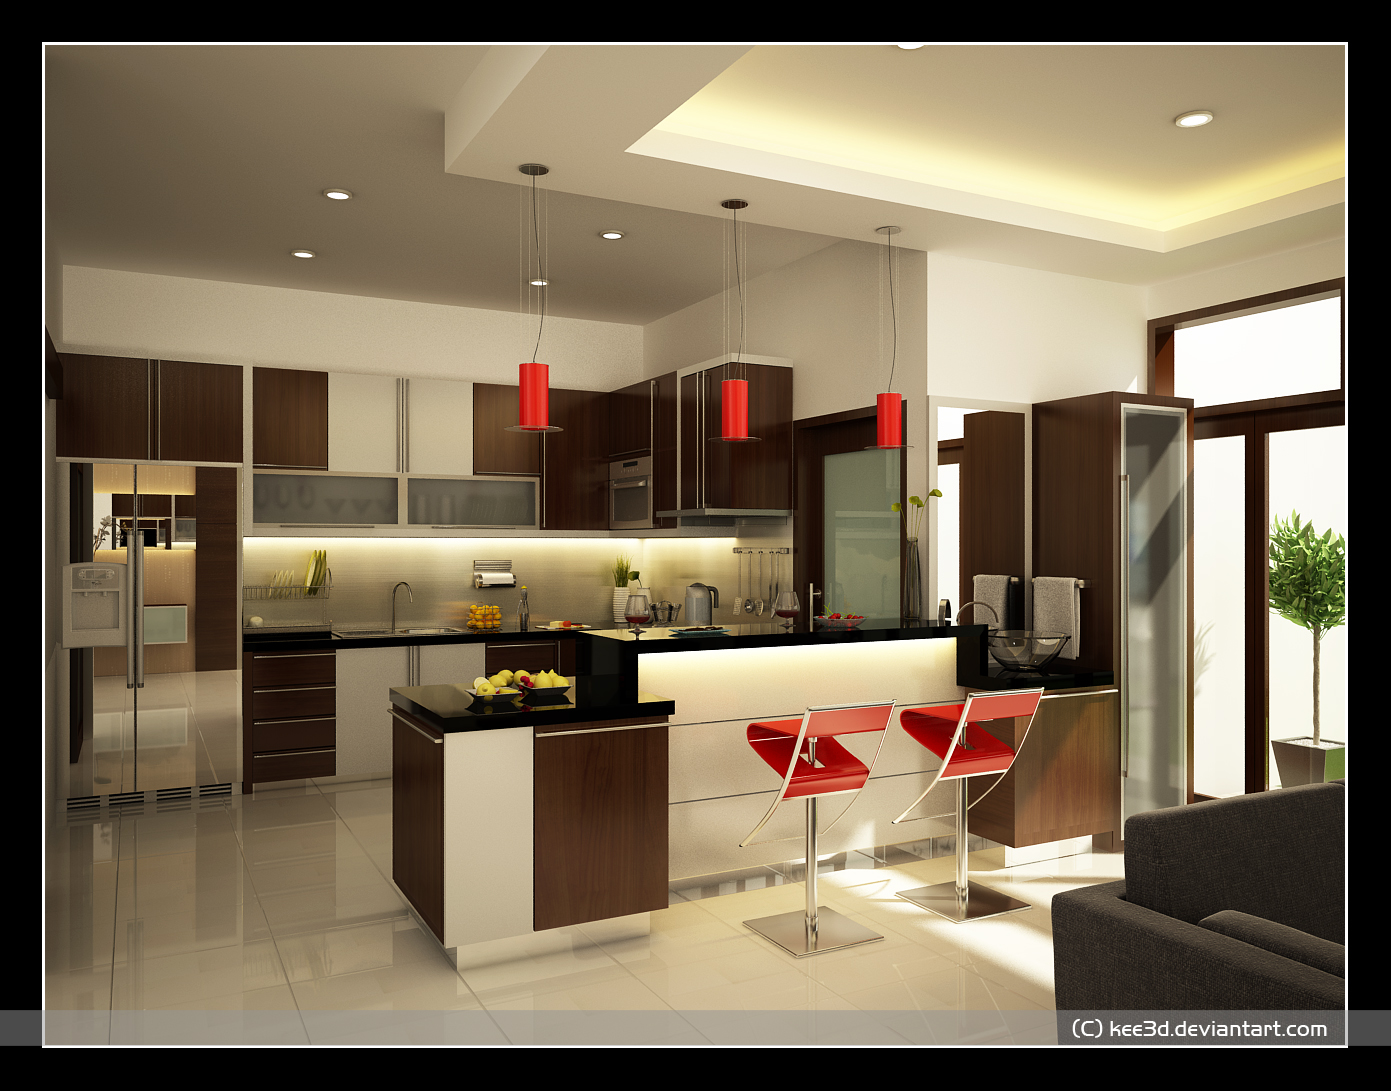 kitchen design ideas kitchen design pictures and ideas - Interior Design Ideas Kitchen